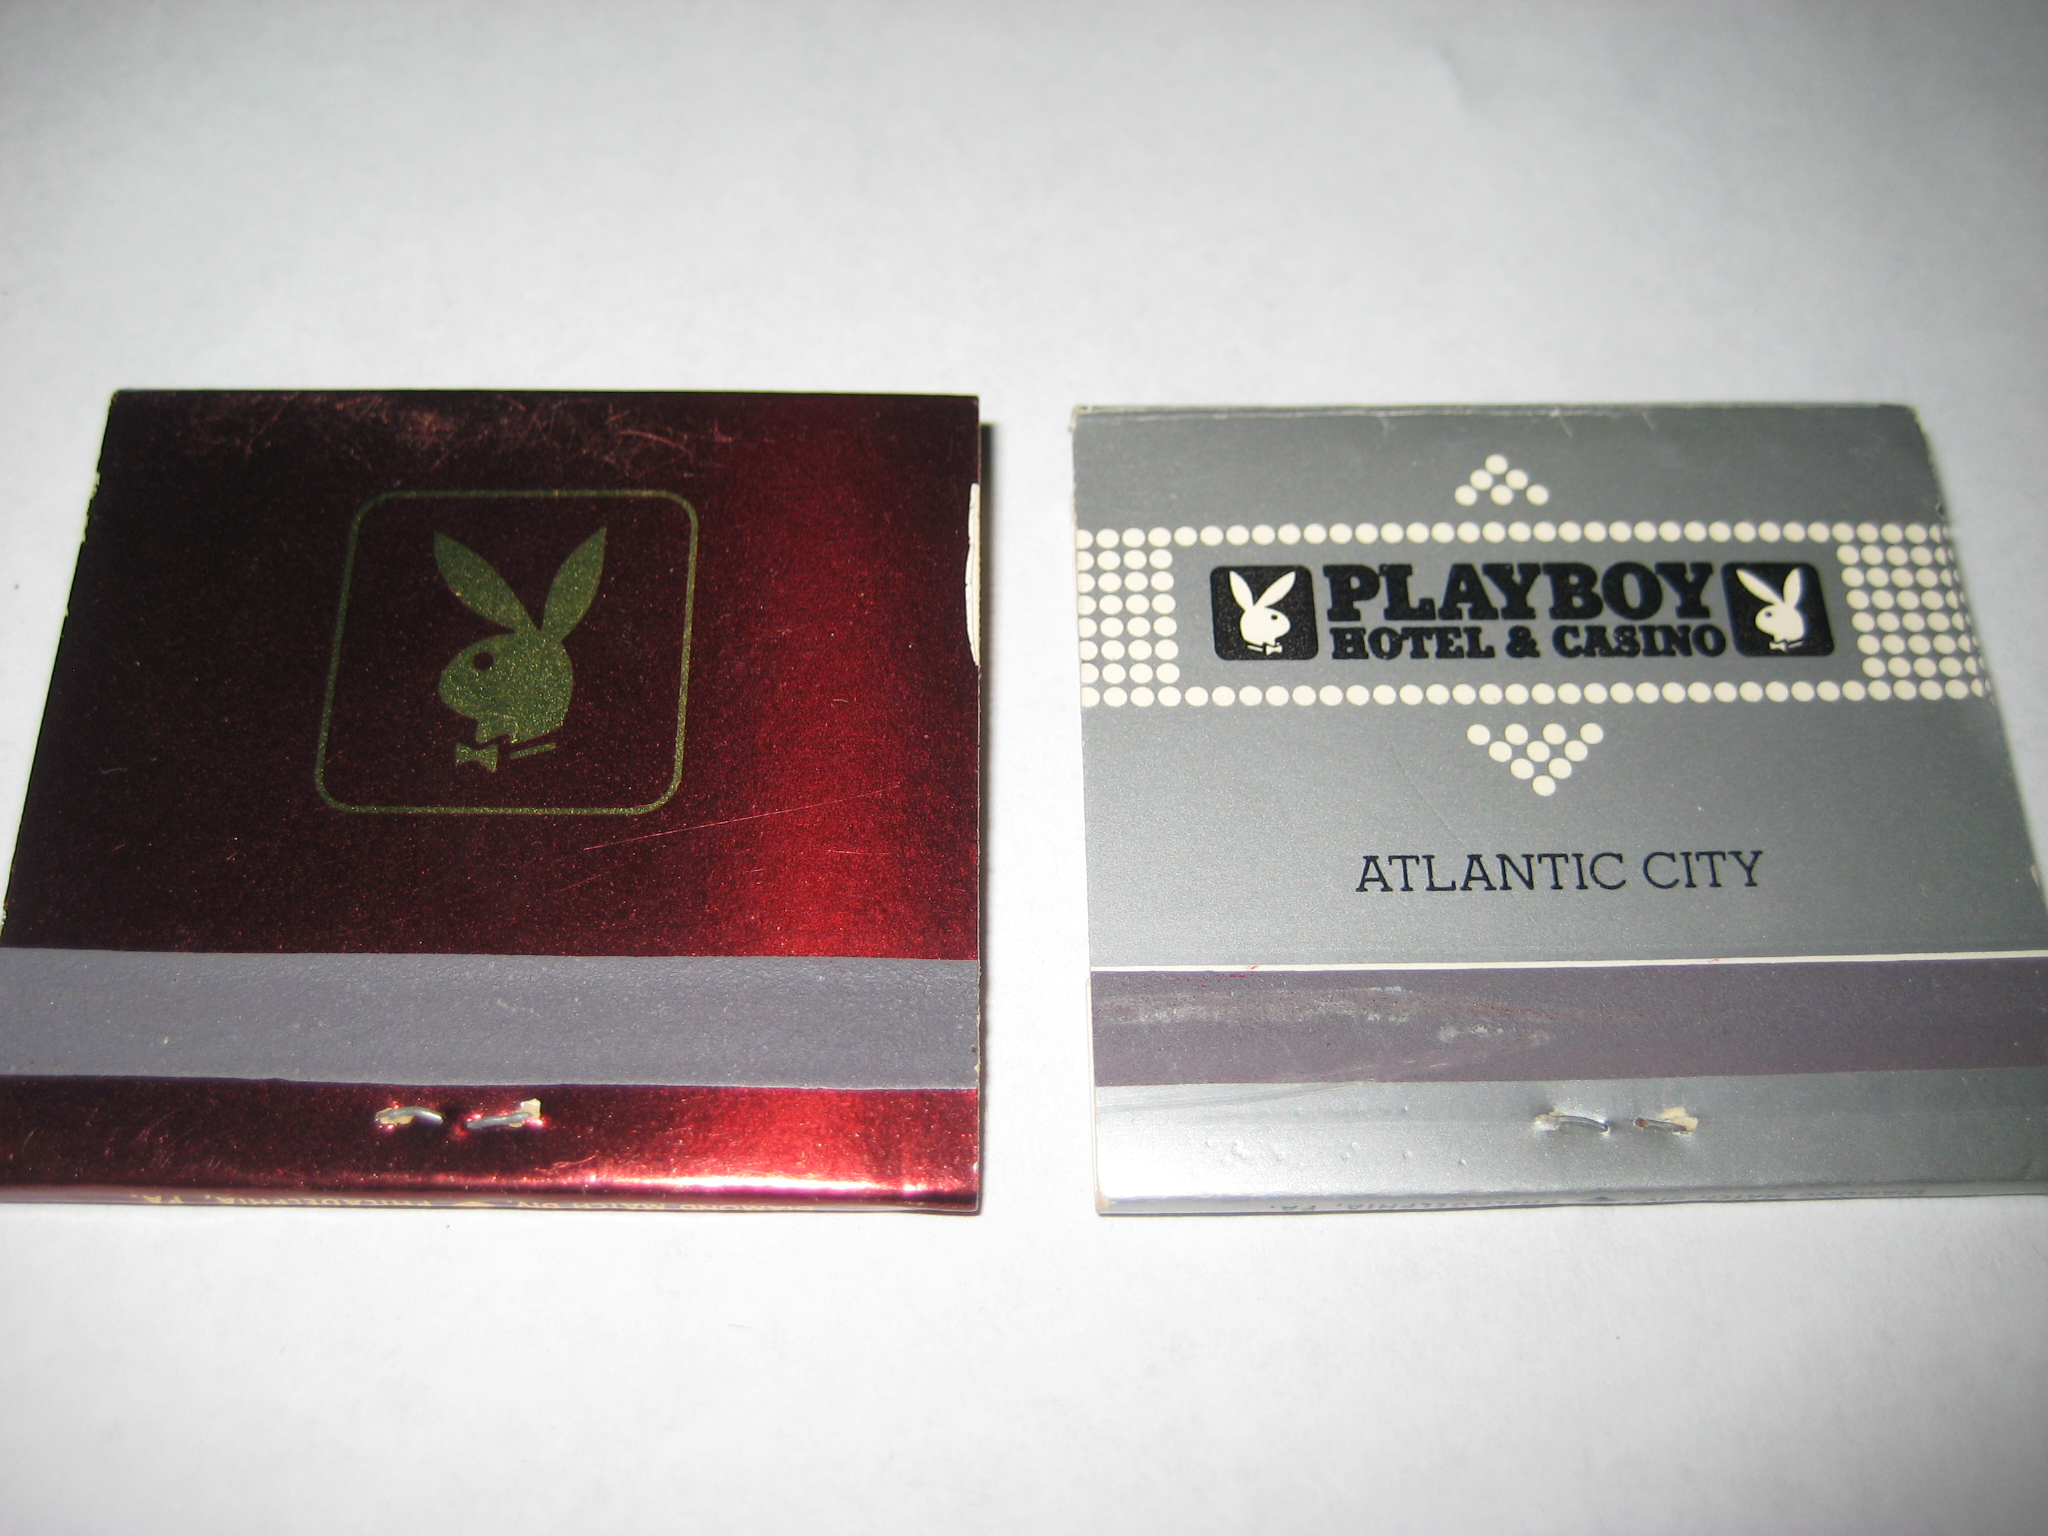 Playboy Hotel and Casino matches